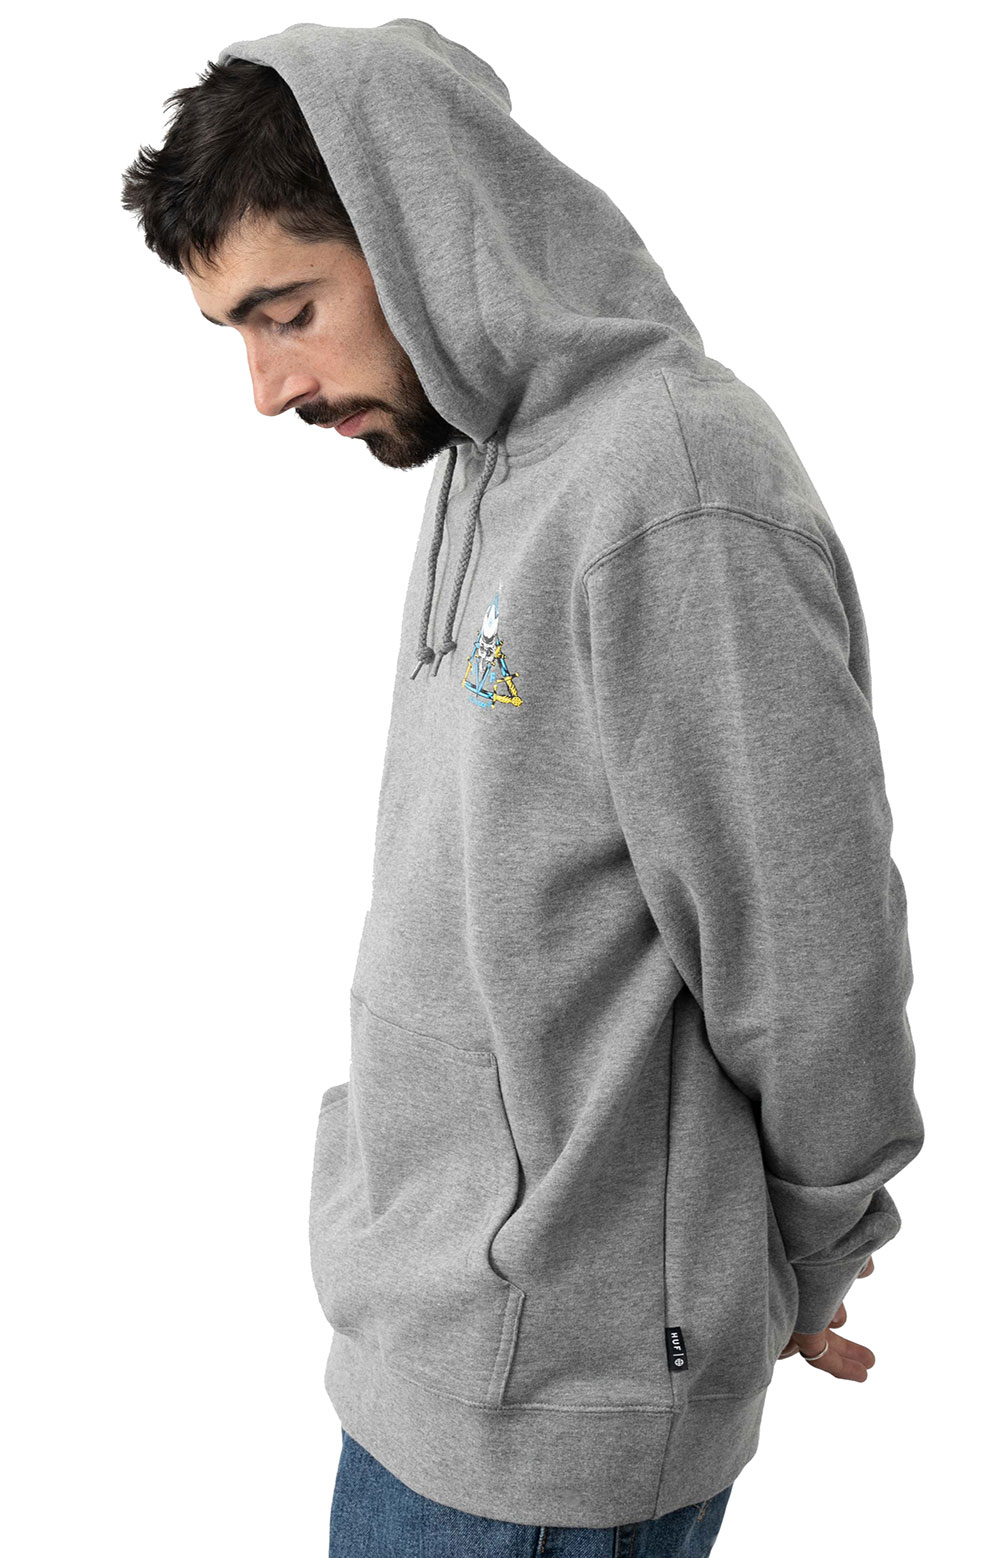 Blvd TT Pullover Hoodie - Grey Heather  3